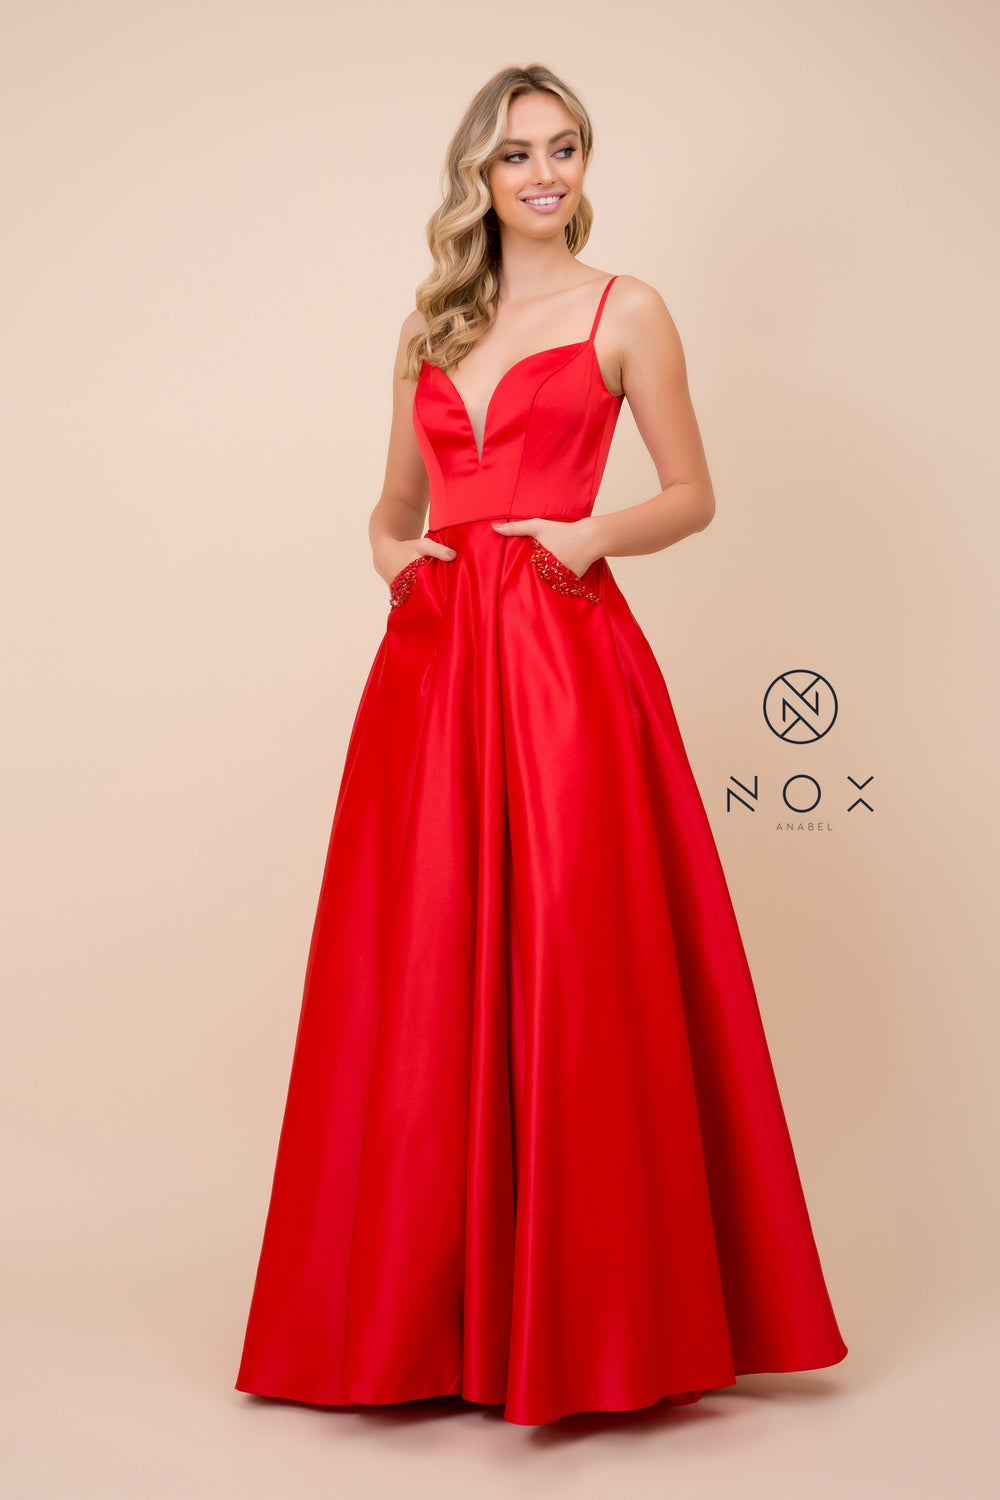 Ball Gown With Pockets Prom Dress_N308 by Narianna